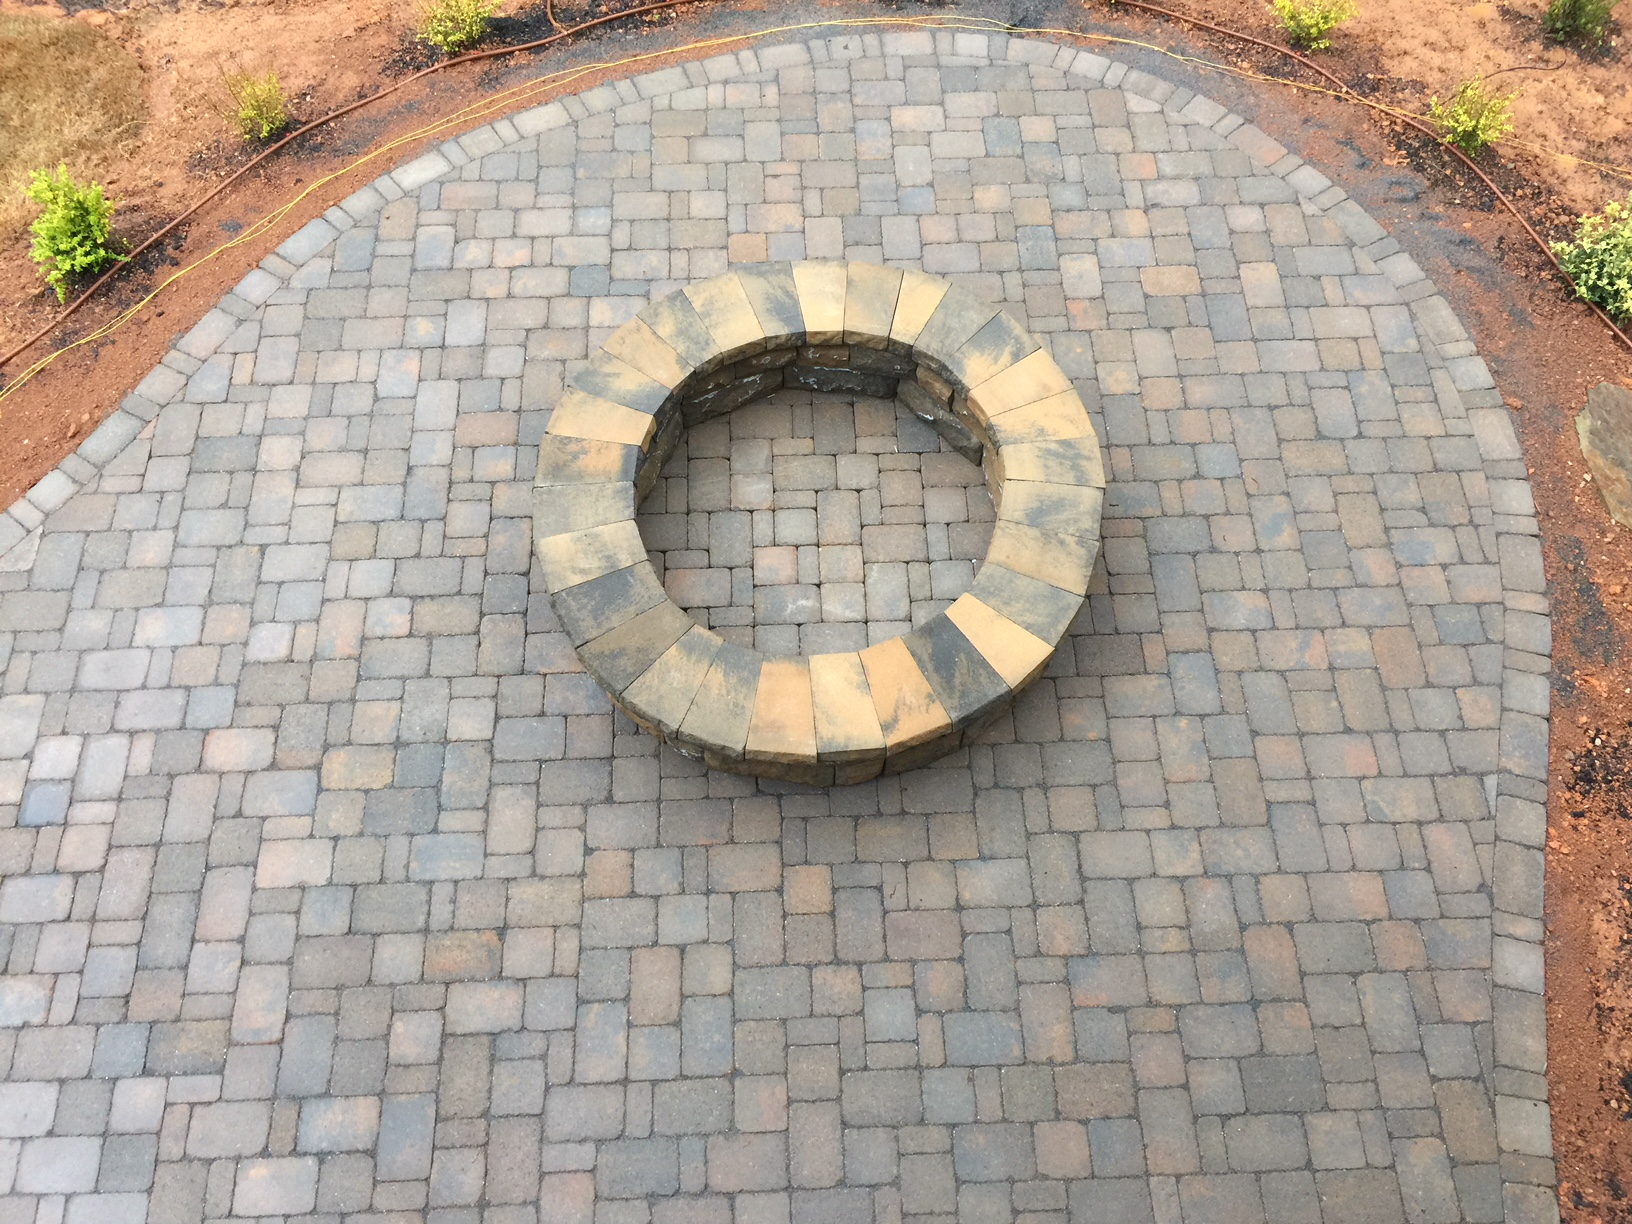 A Belgard Paver Patio, Fire Pit and Landscaping - Mr ... on Pavers Patio With Fire Pit id=23705